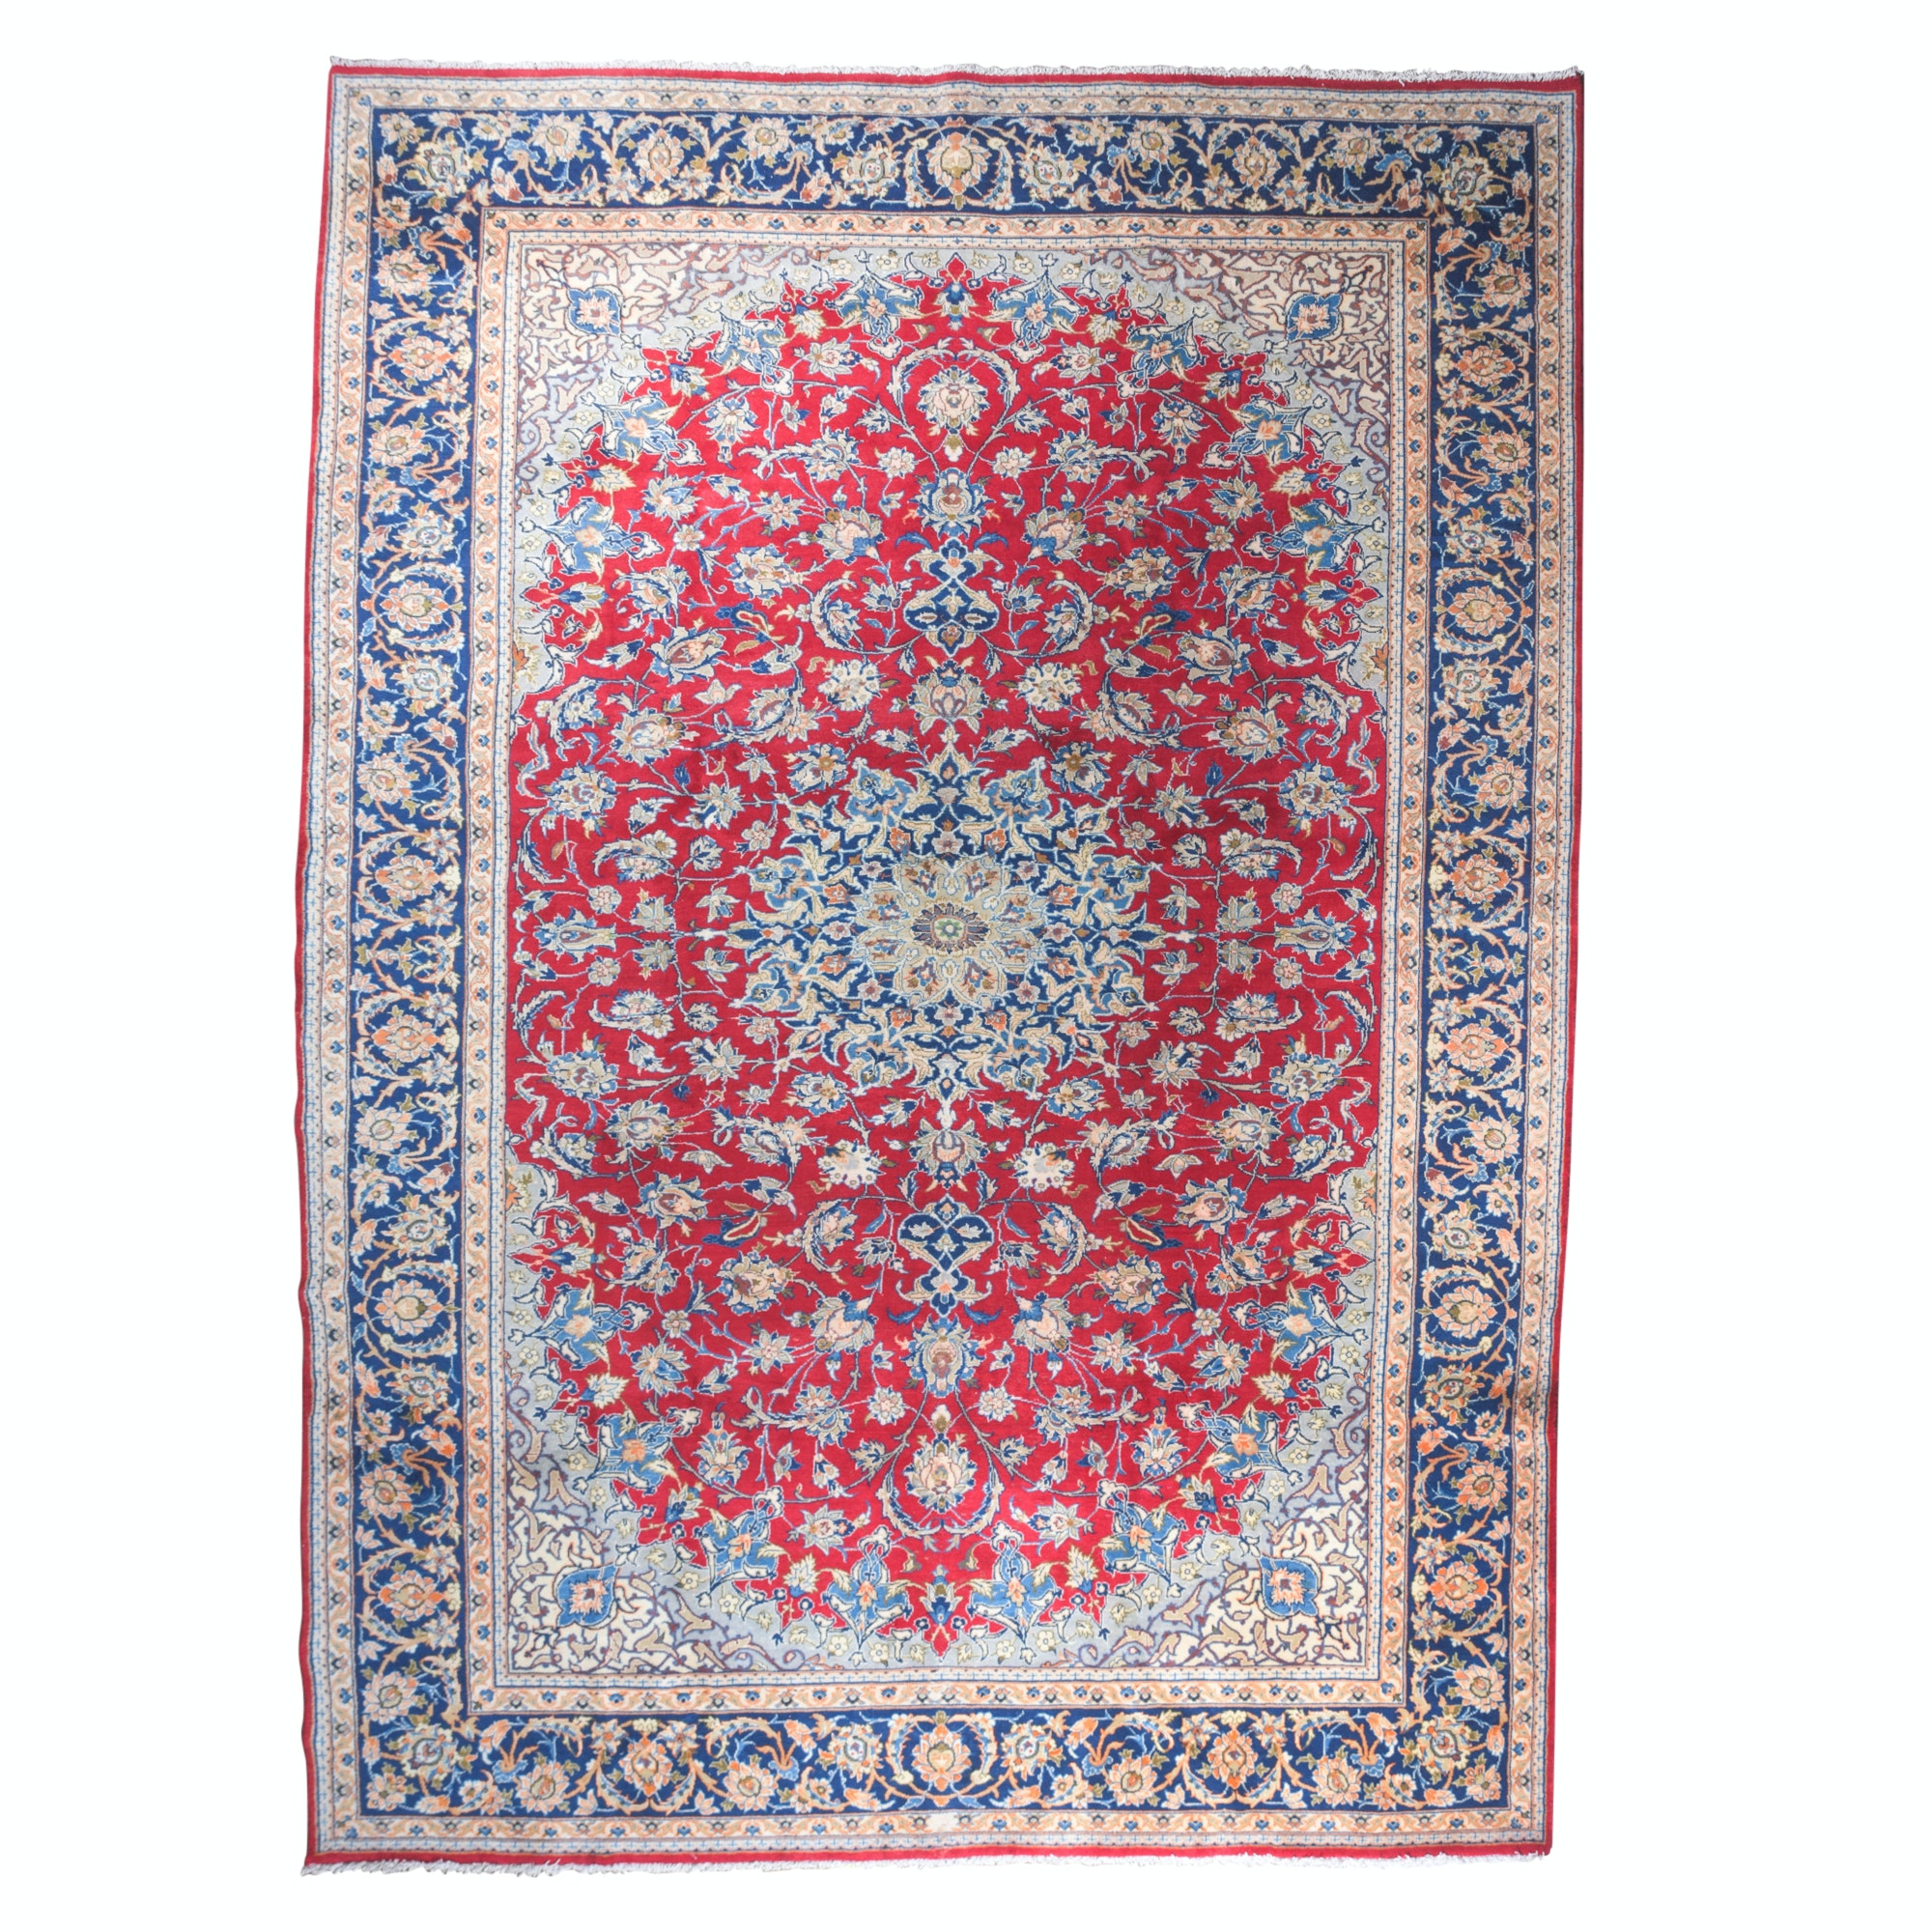 Hand-Knotted Persian Tabriz Wool Room Sized Rug